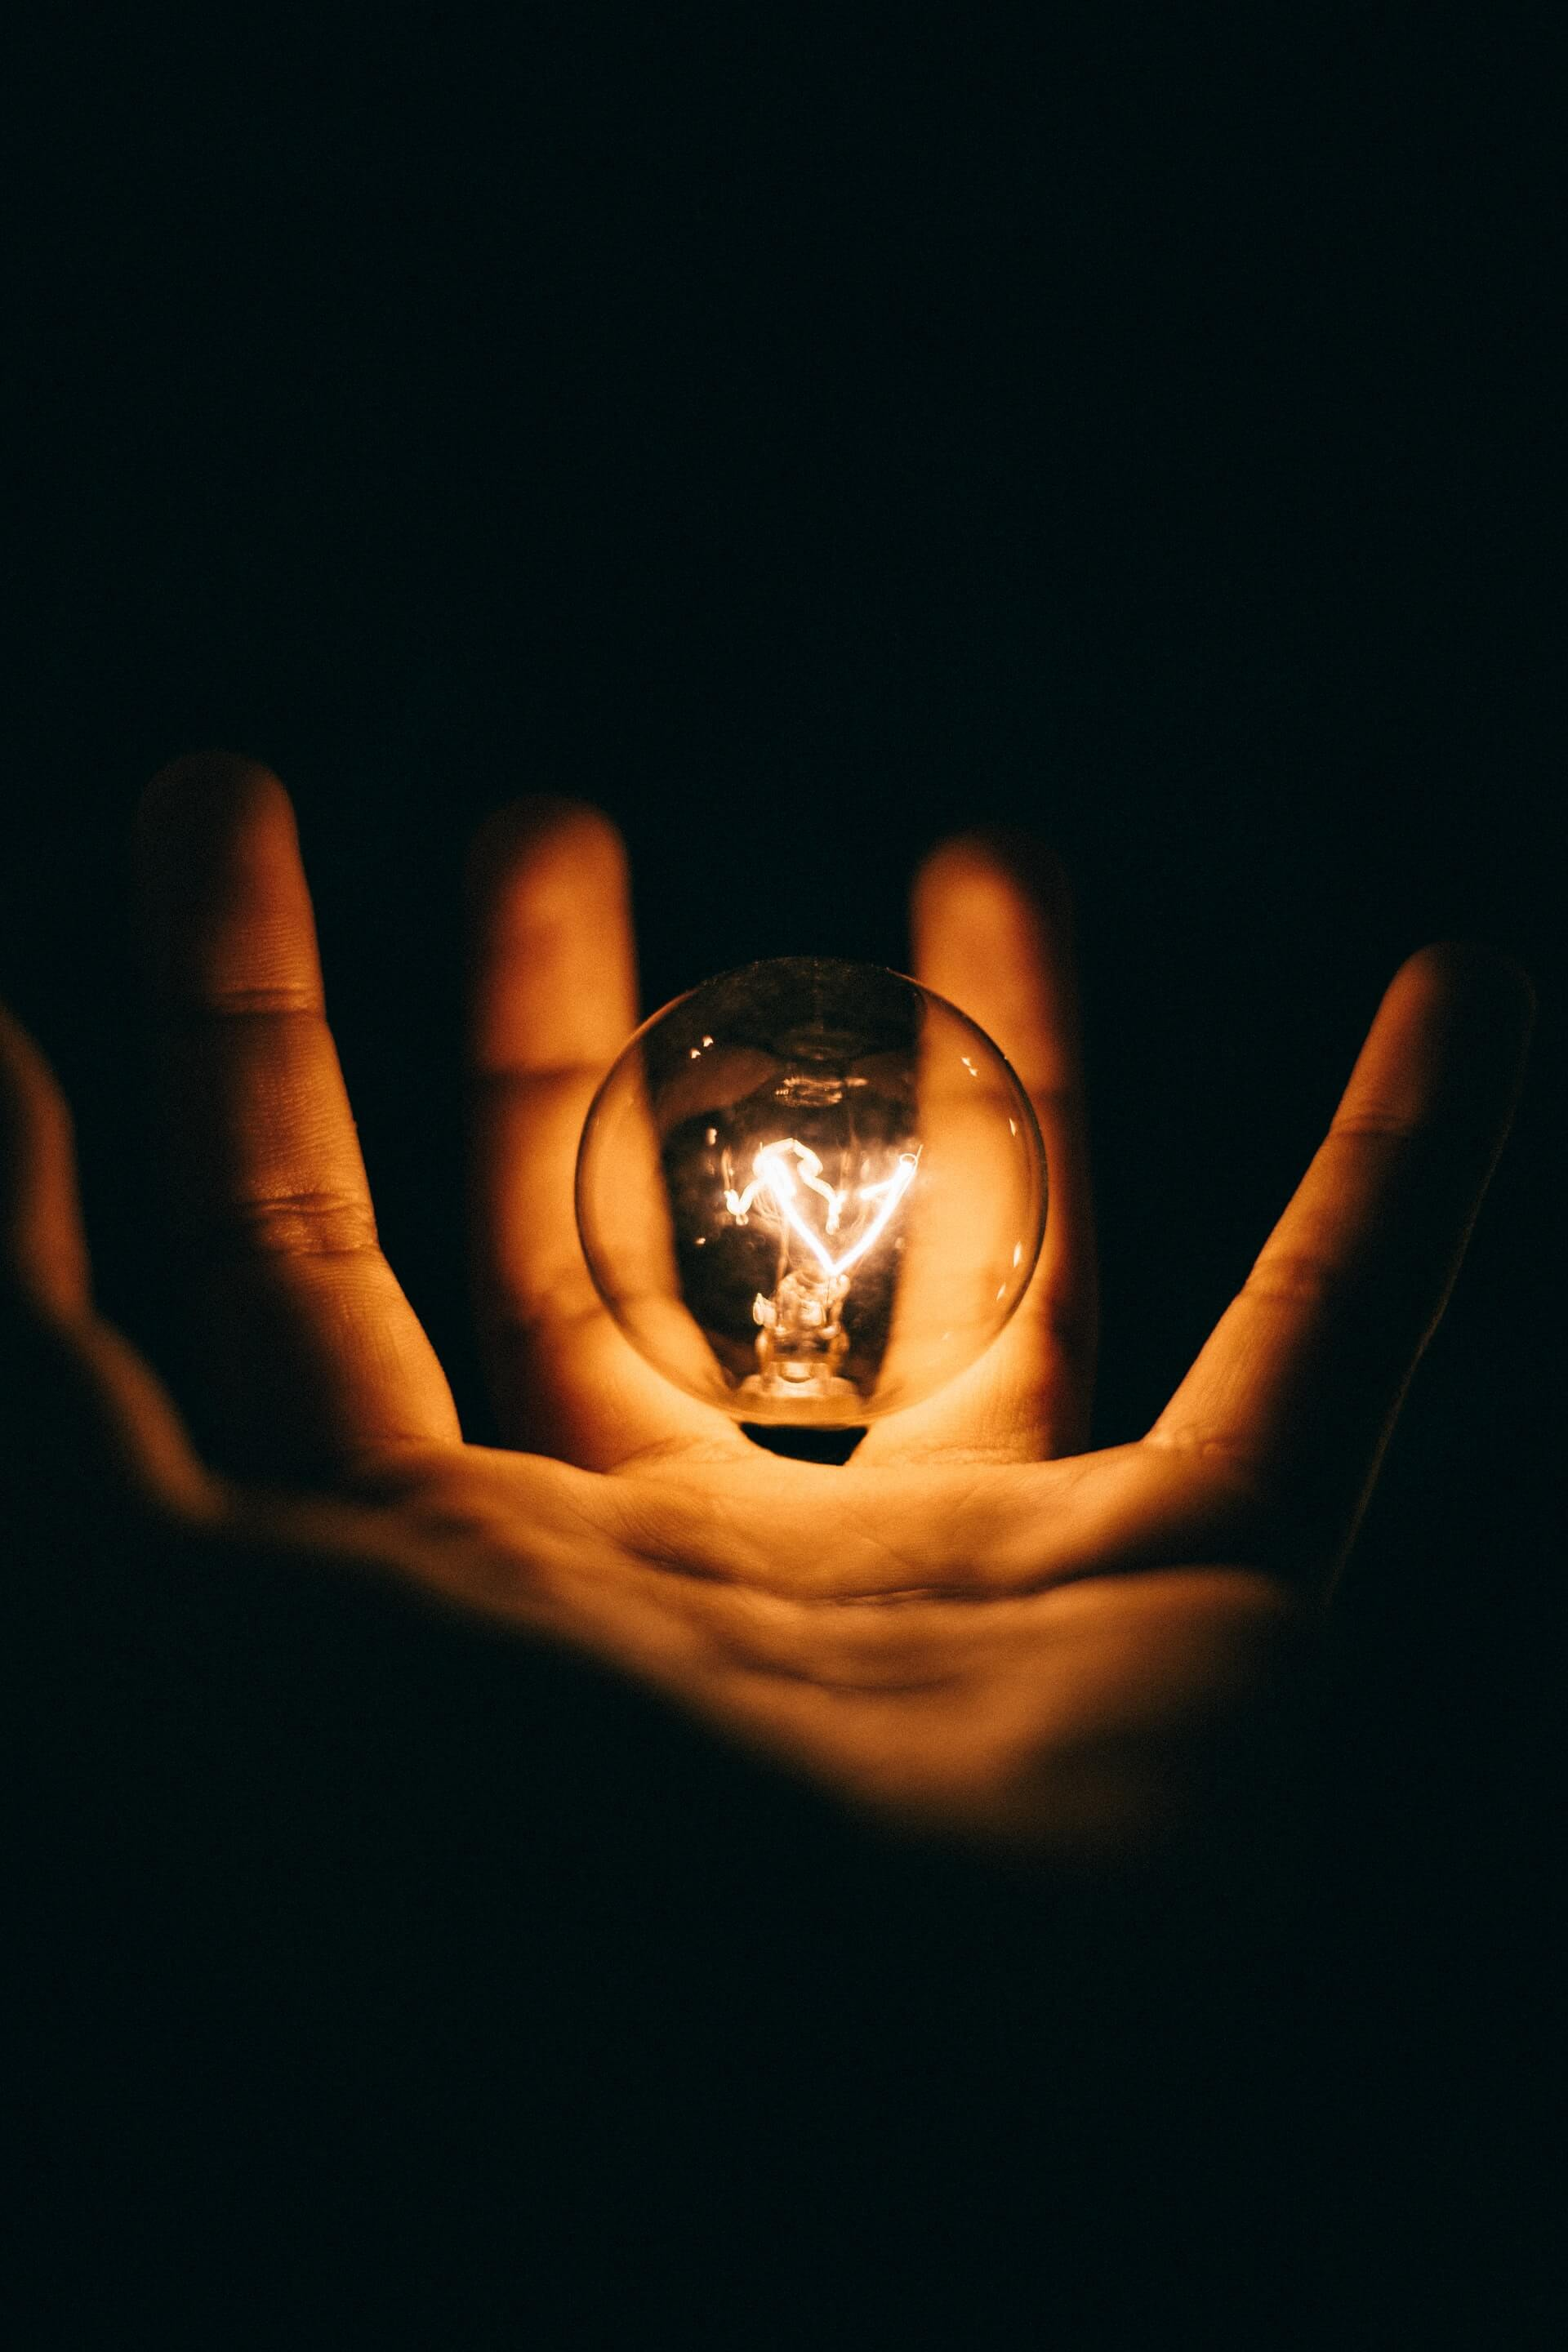 gaining-control-of-your-life-hand-holding-lightbulb